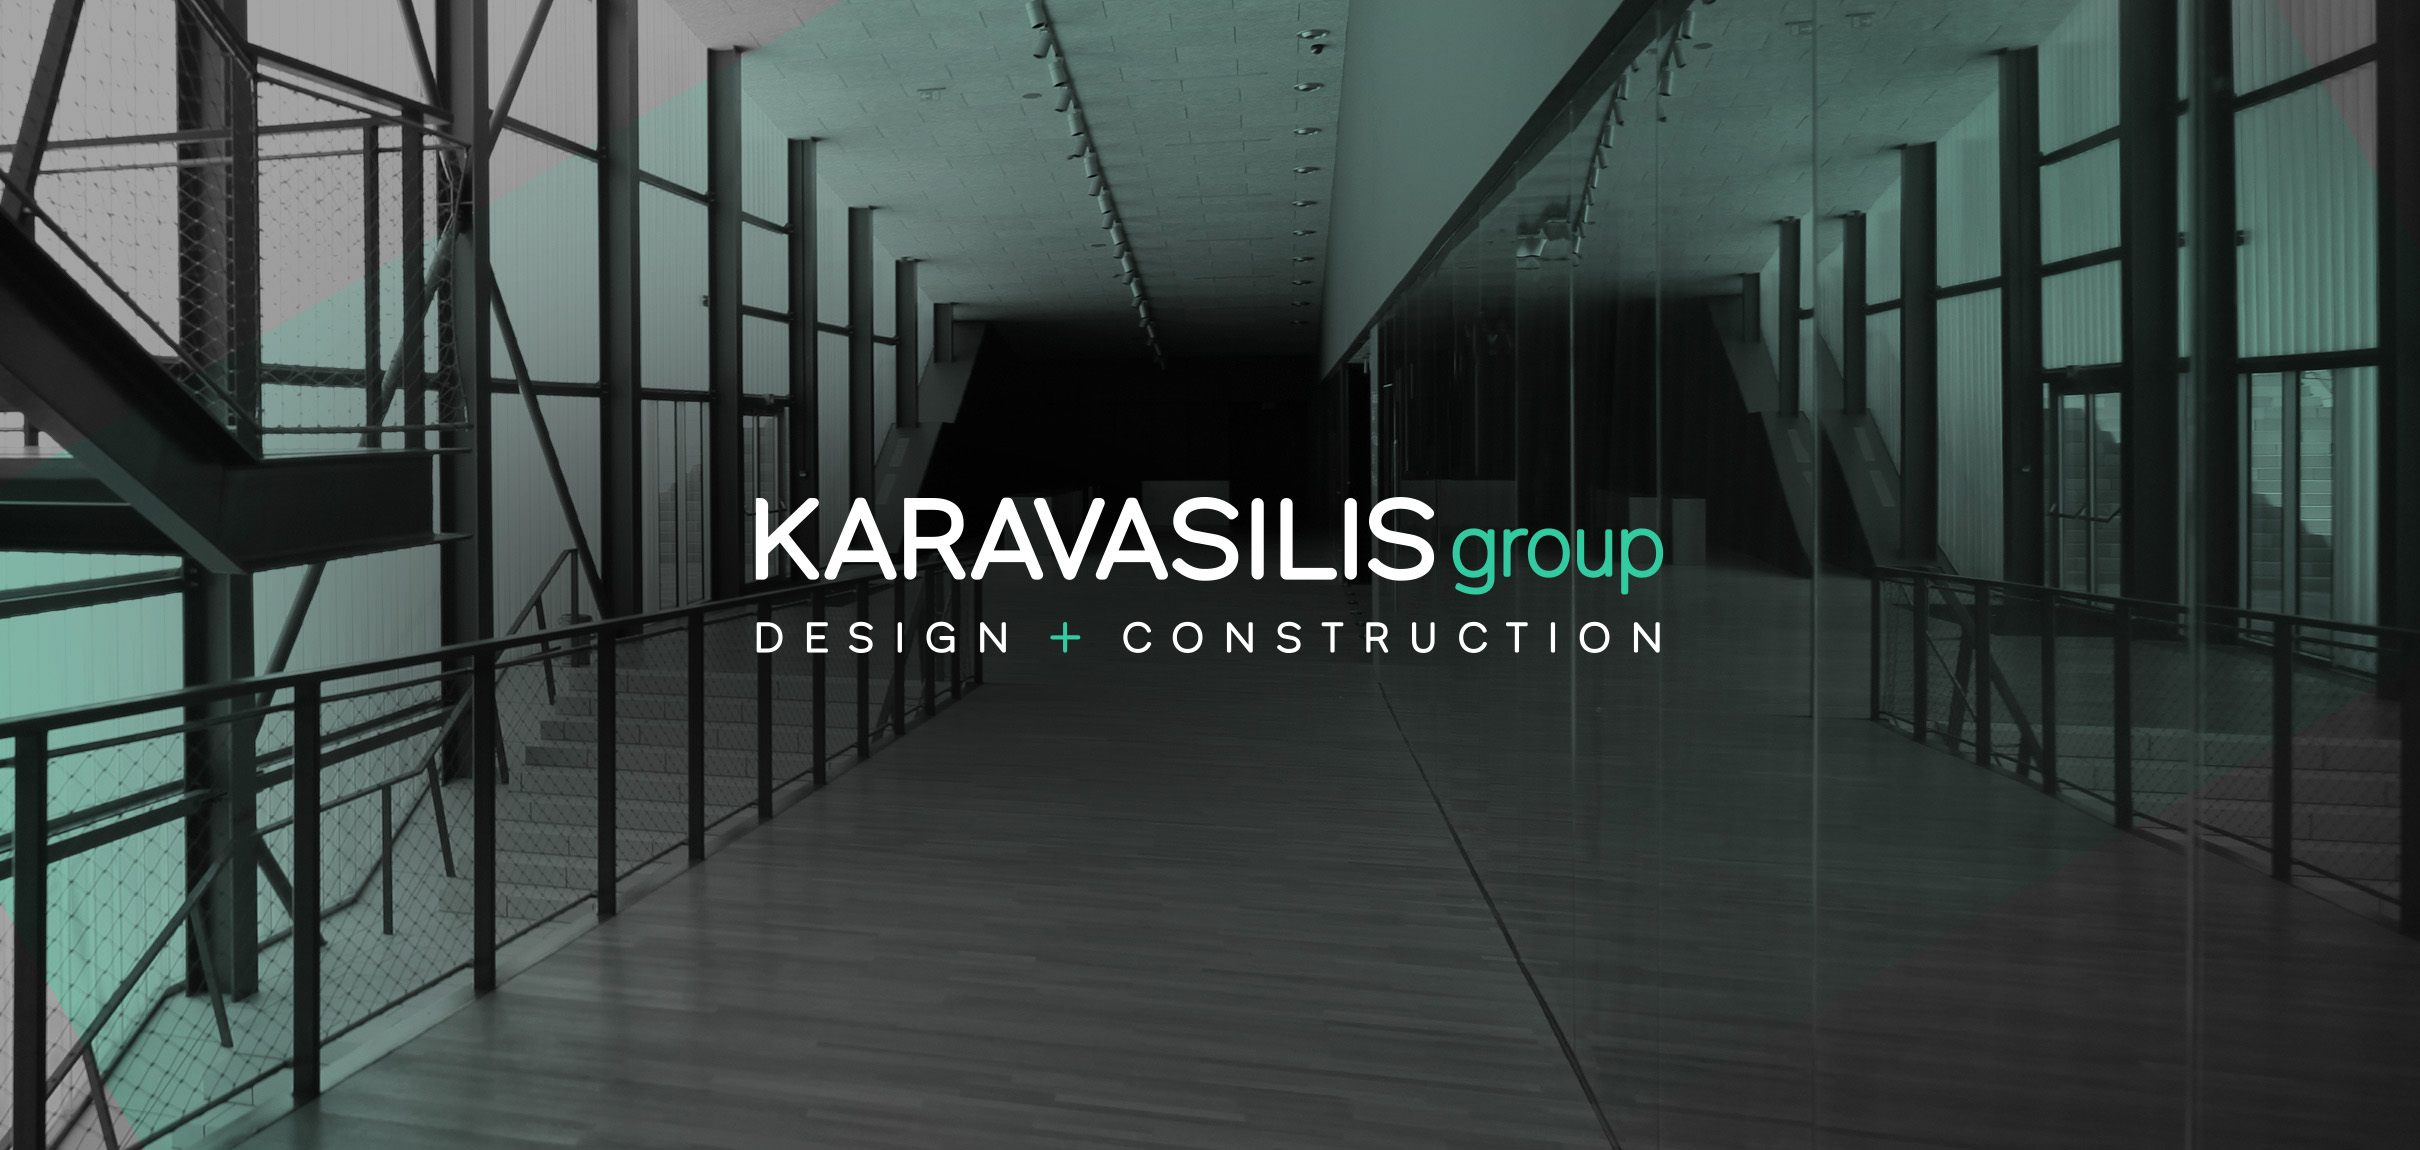 Karavasilis Group Outter Image